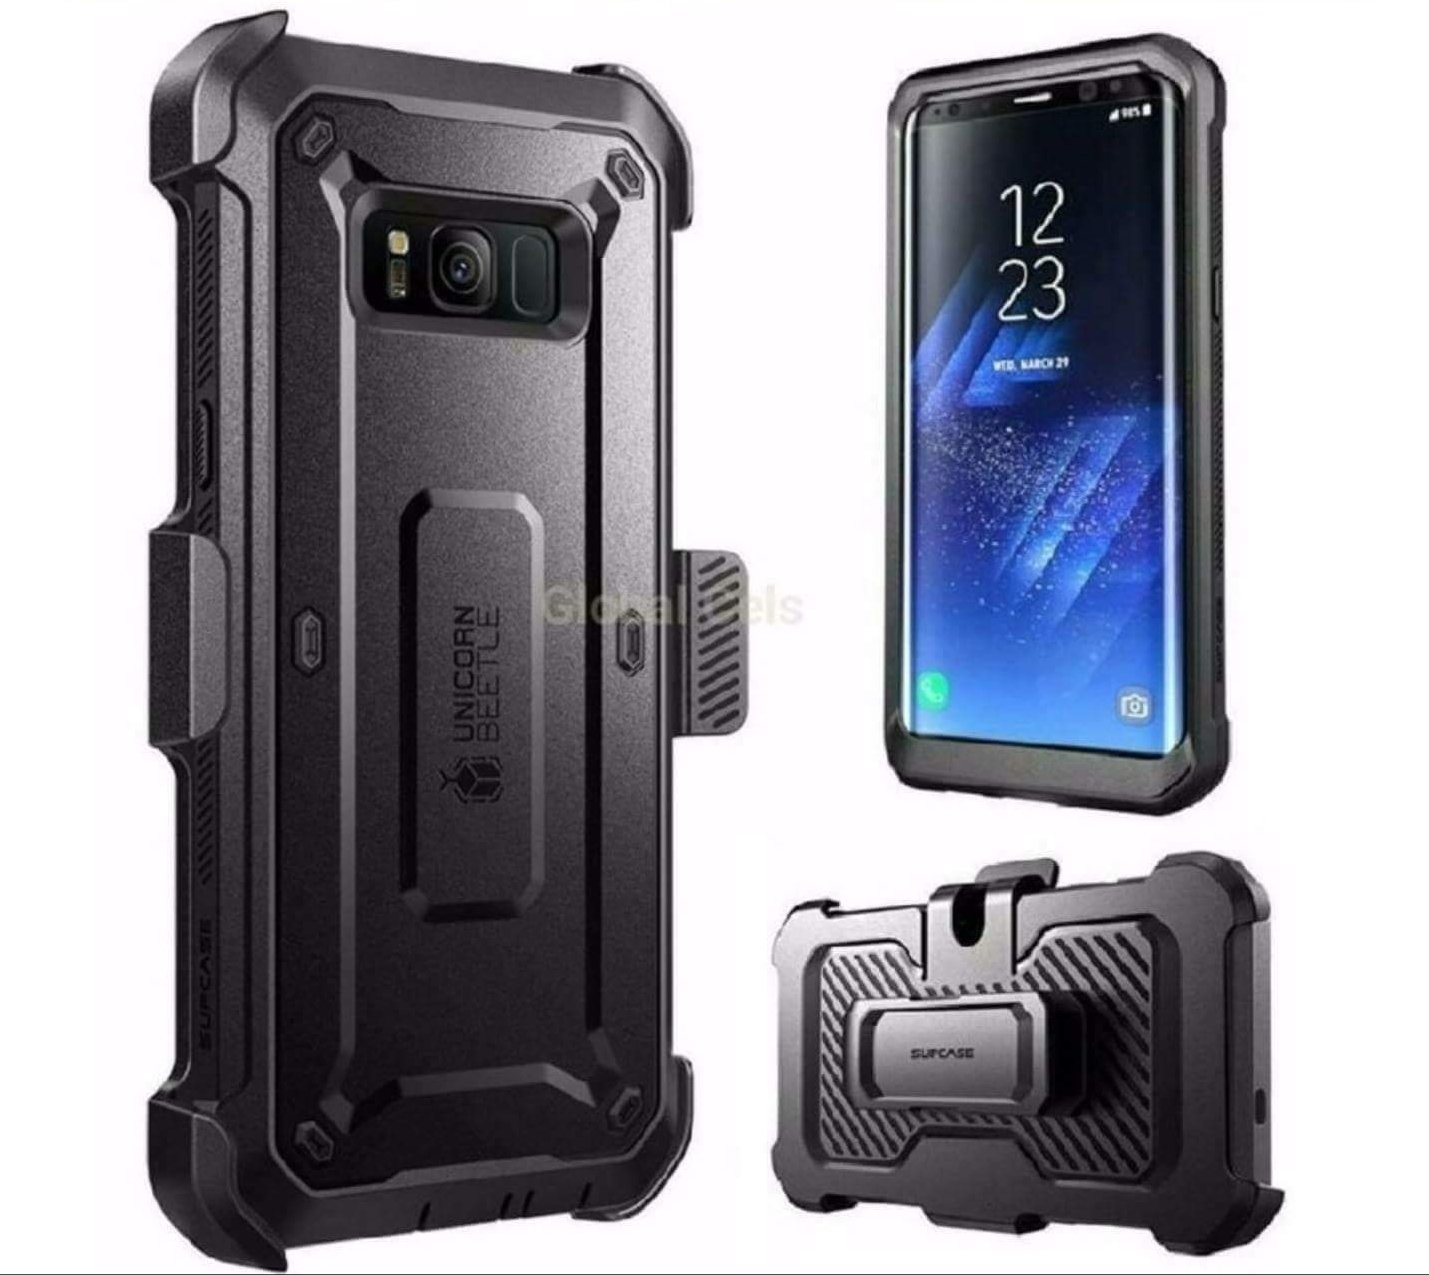 275b0acc891 Case Supcase Galaxy S8 Plus S8 Extremo Protector 360 c/ Gancho